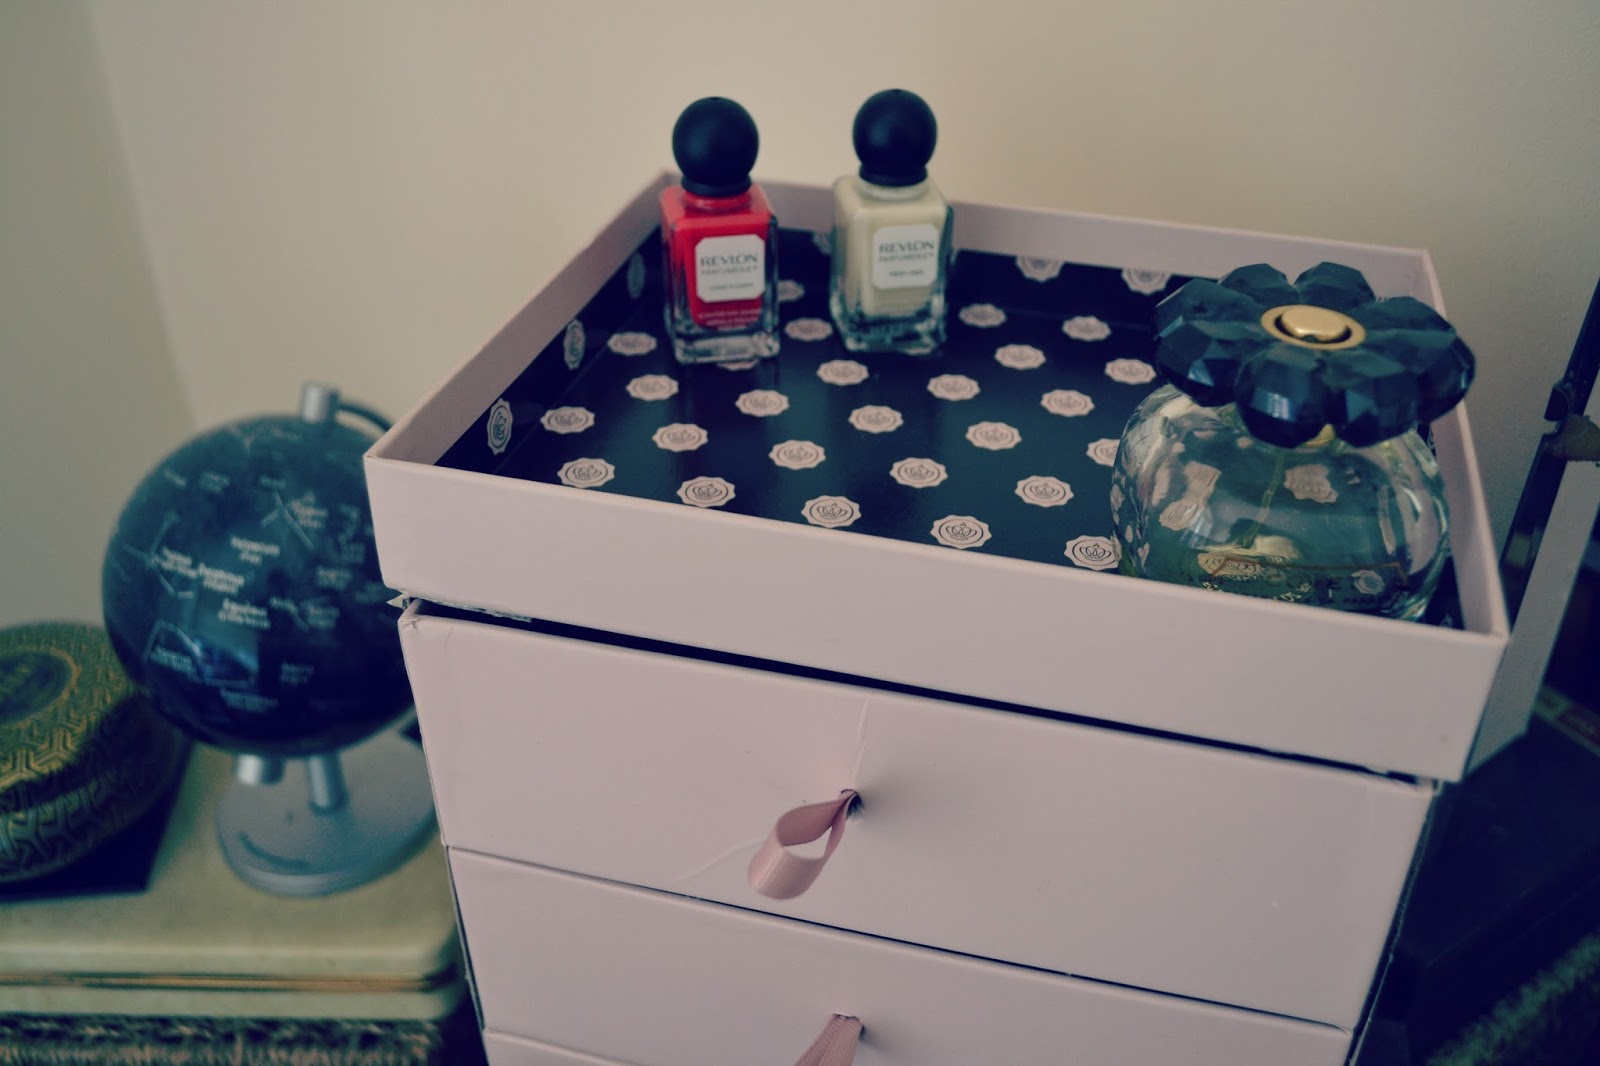 Glossybox storage chest revlone parfumerie polish SJP covet fragrance